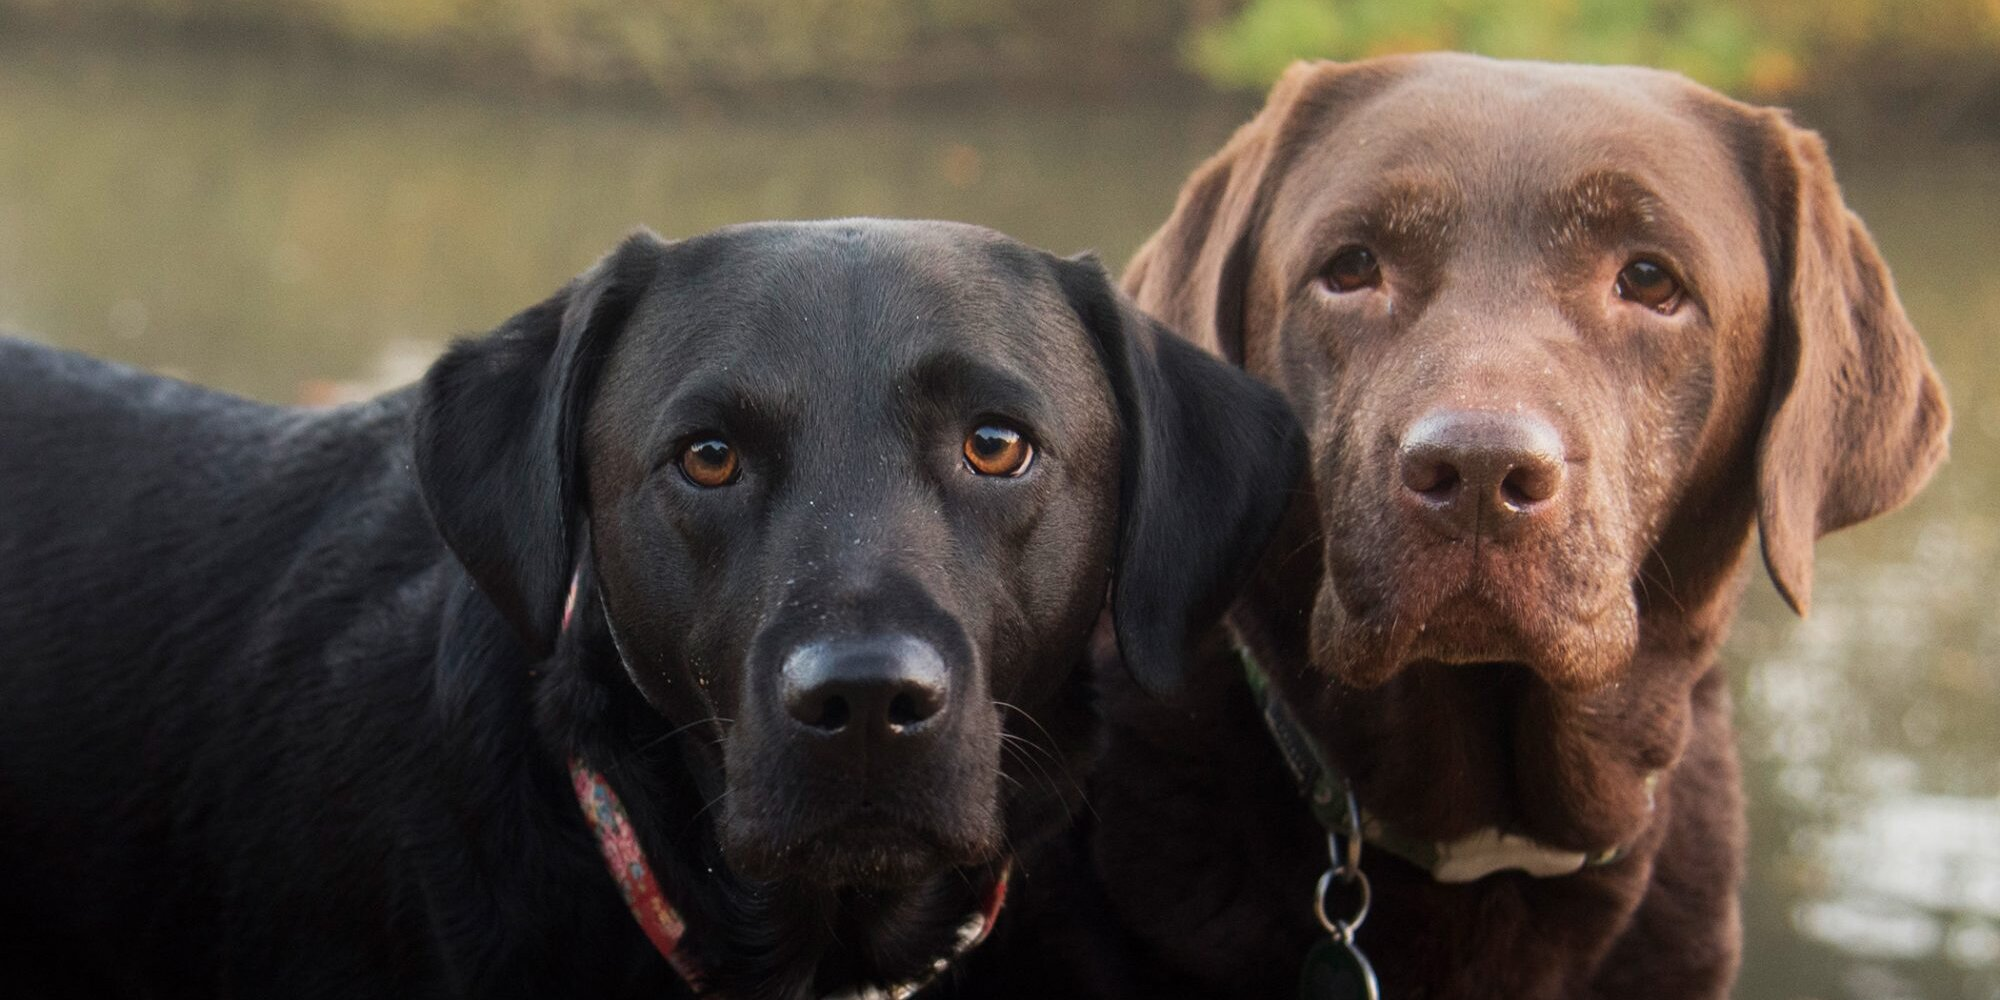 These Hero Dogs Are Cleaning Up the World, One Bottle at a Time